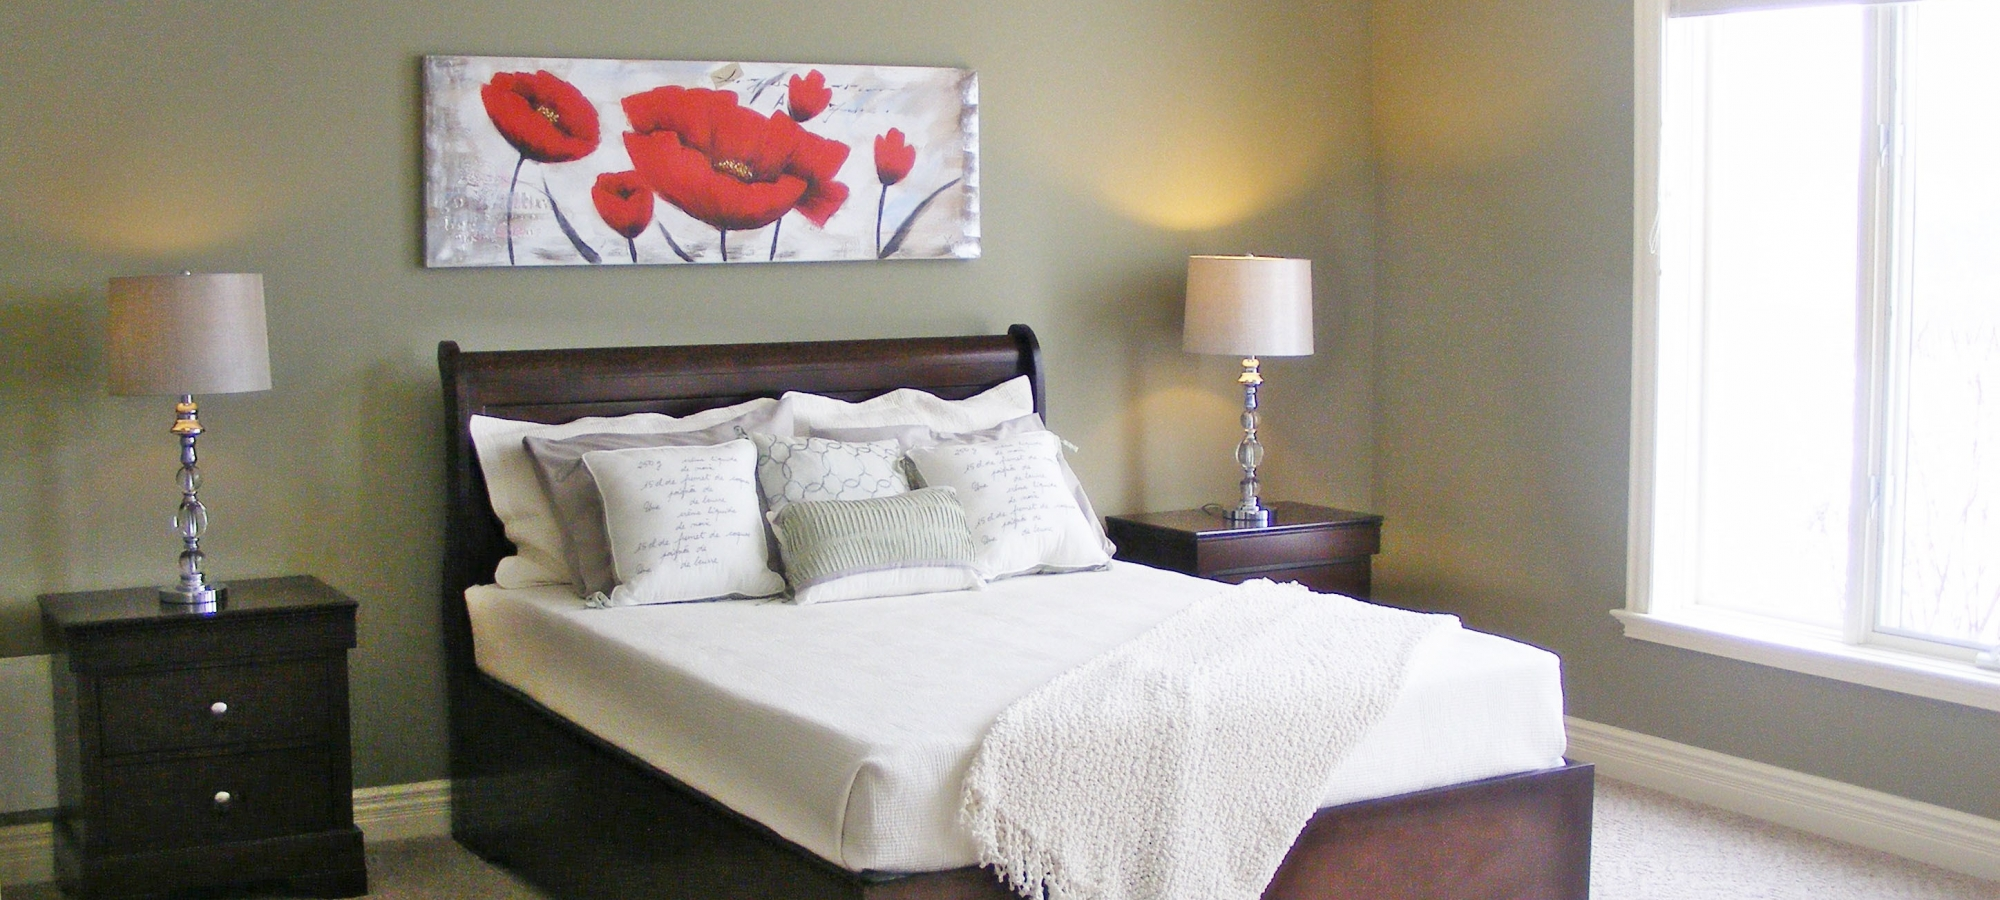 Bedroom-4-bed-home-staging-services